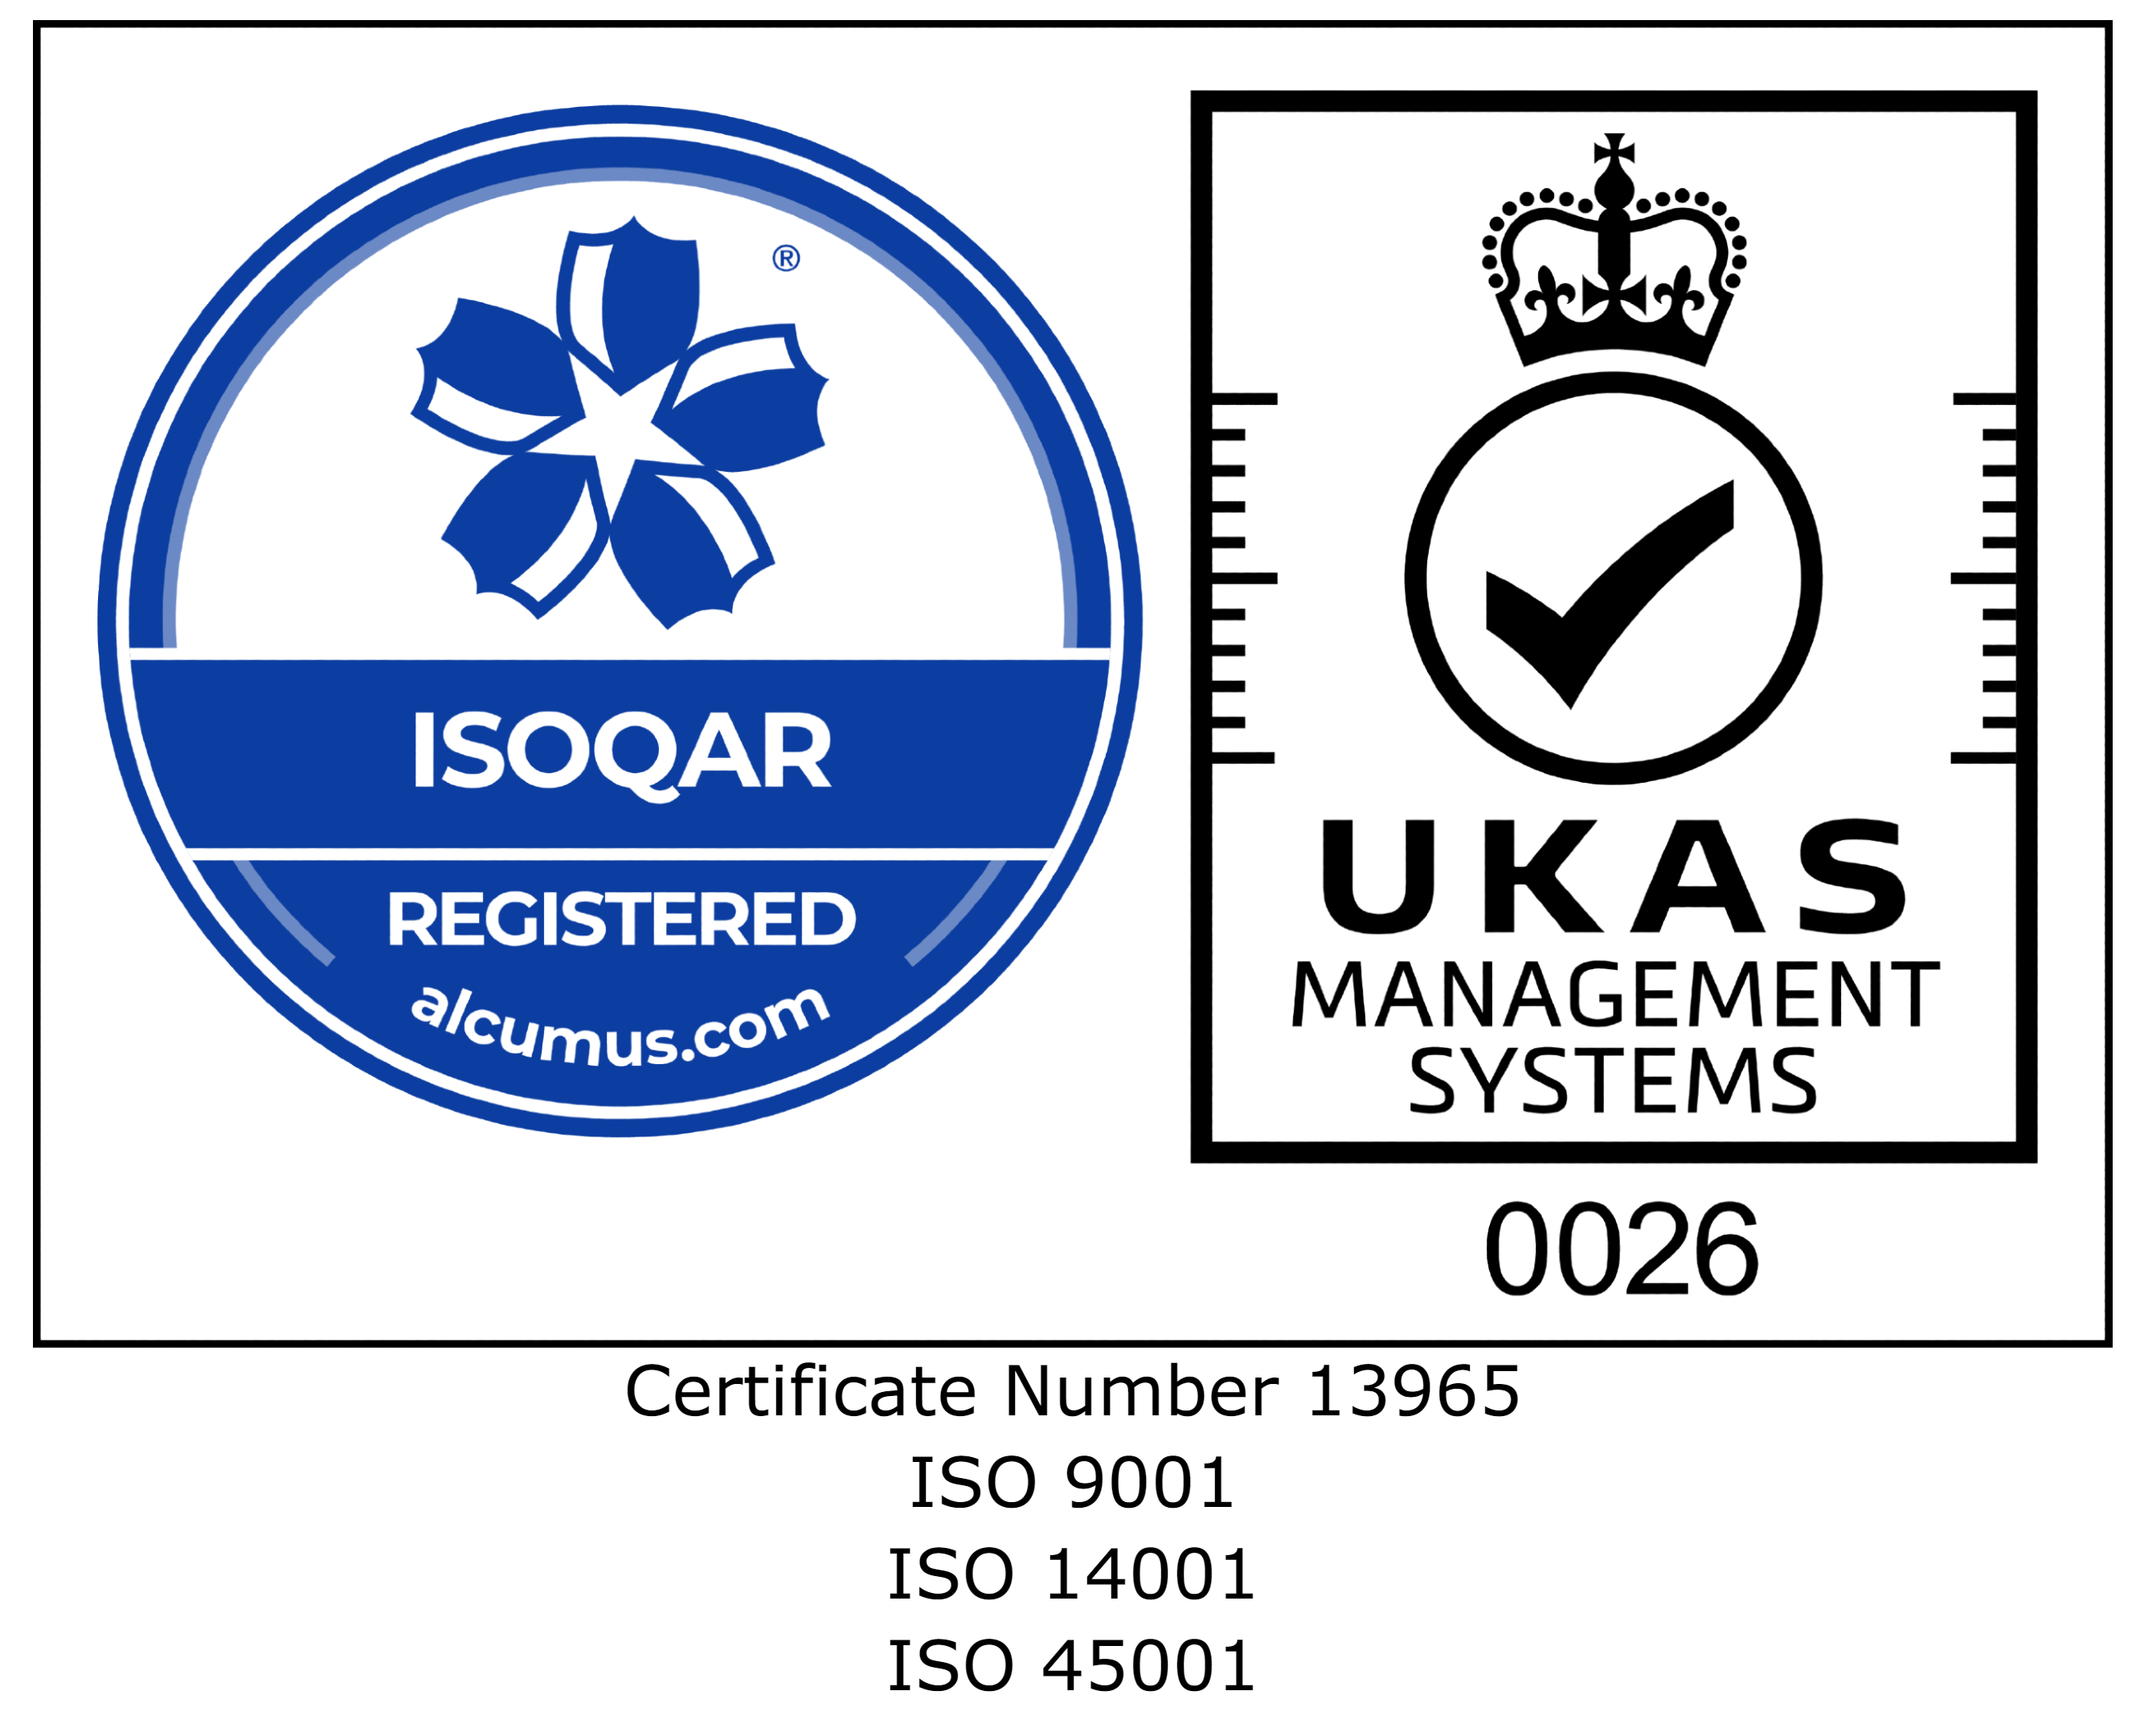 ISO UKAS Logo With Text 2021 - Cropped